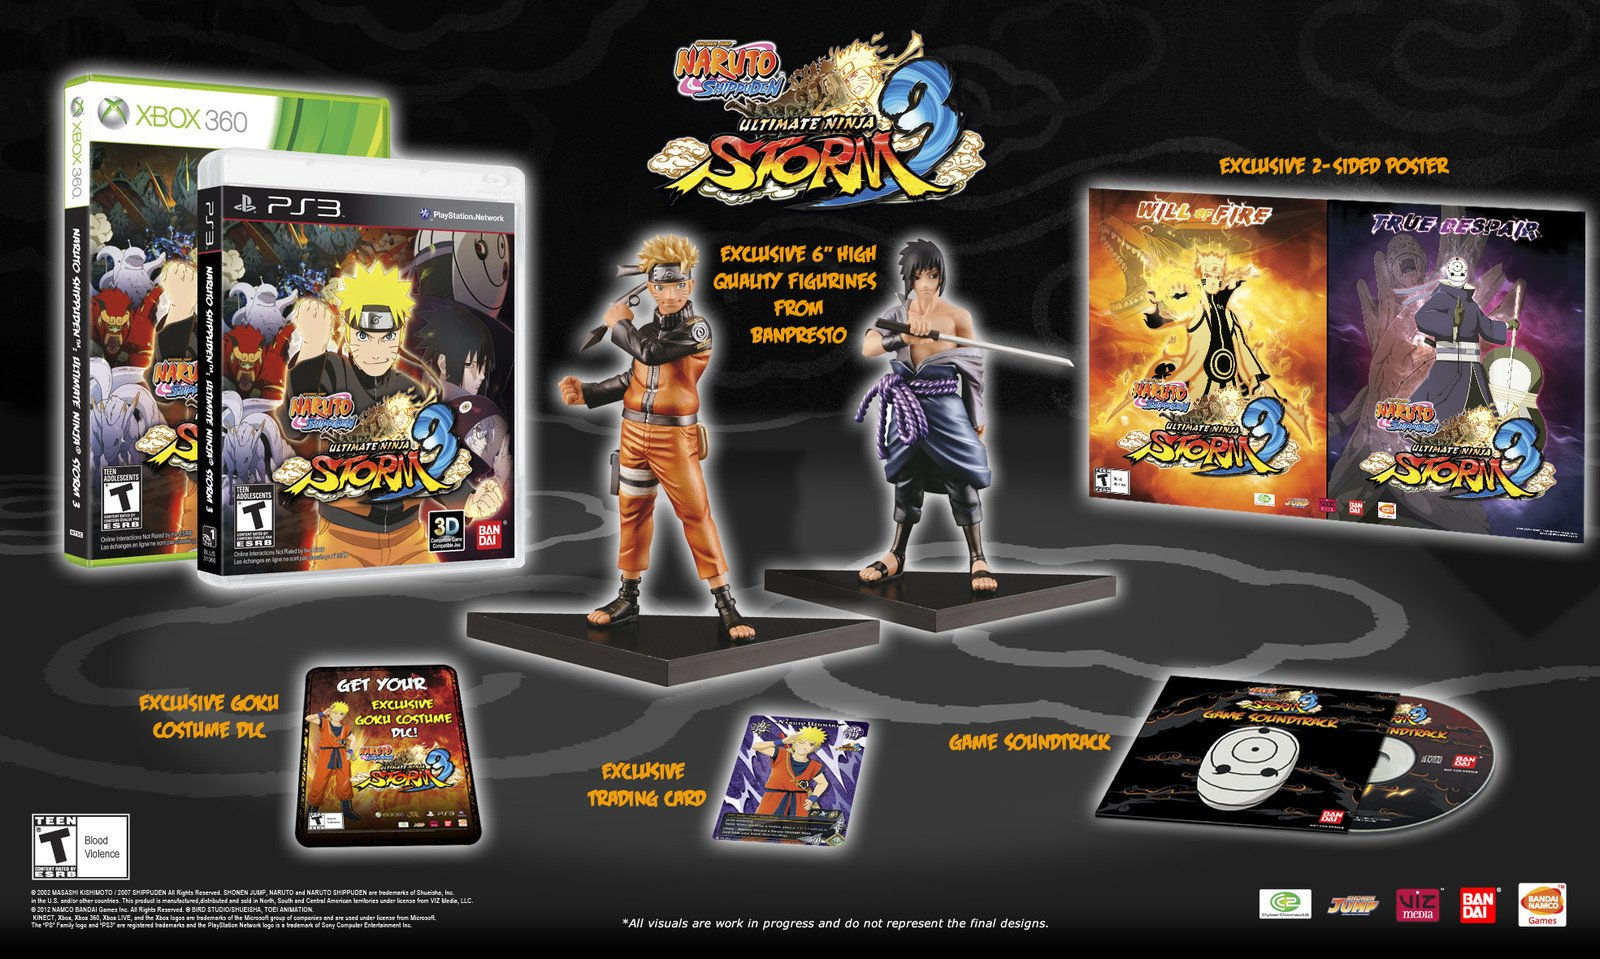 Amazon.com: Naruto Shippuden Ultimate Ninja Storm 3 ...